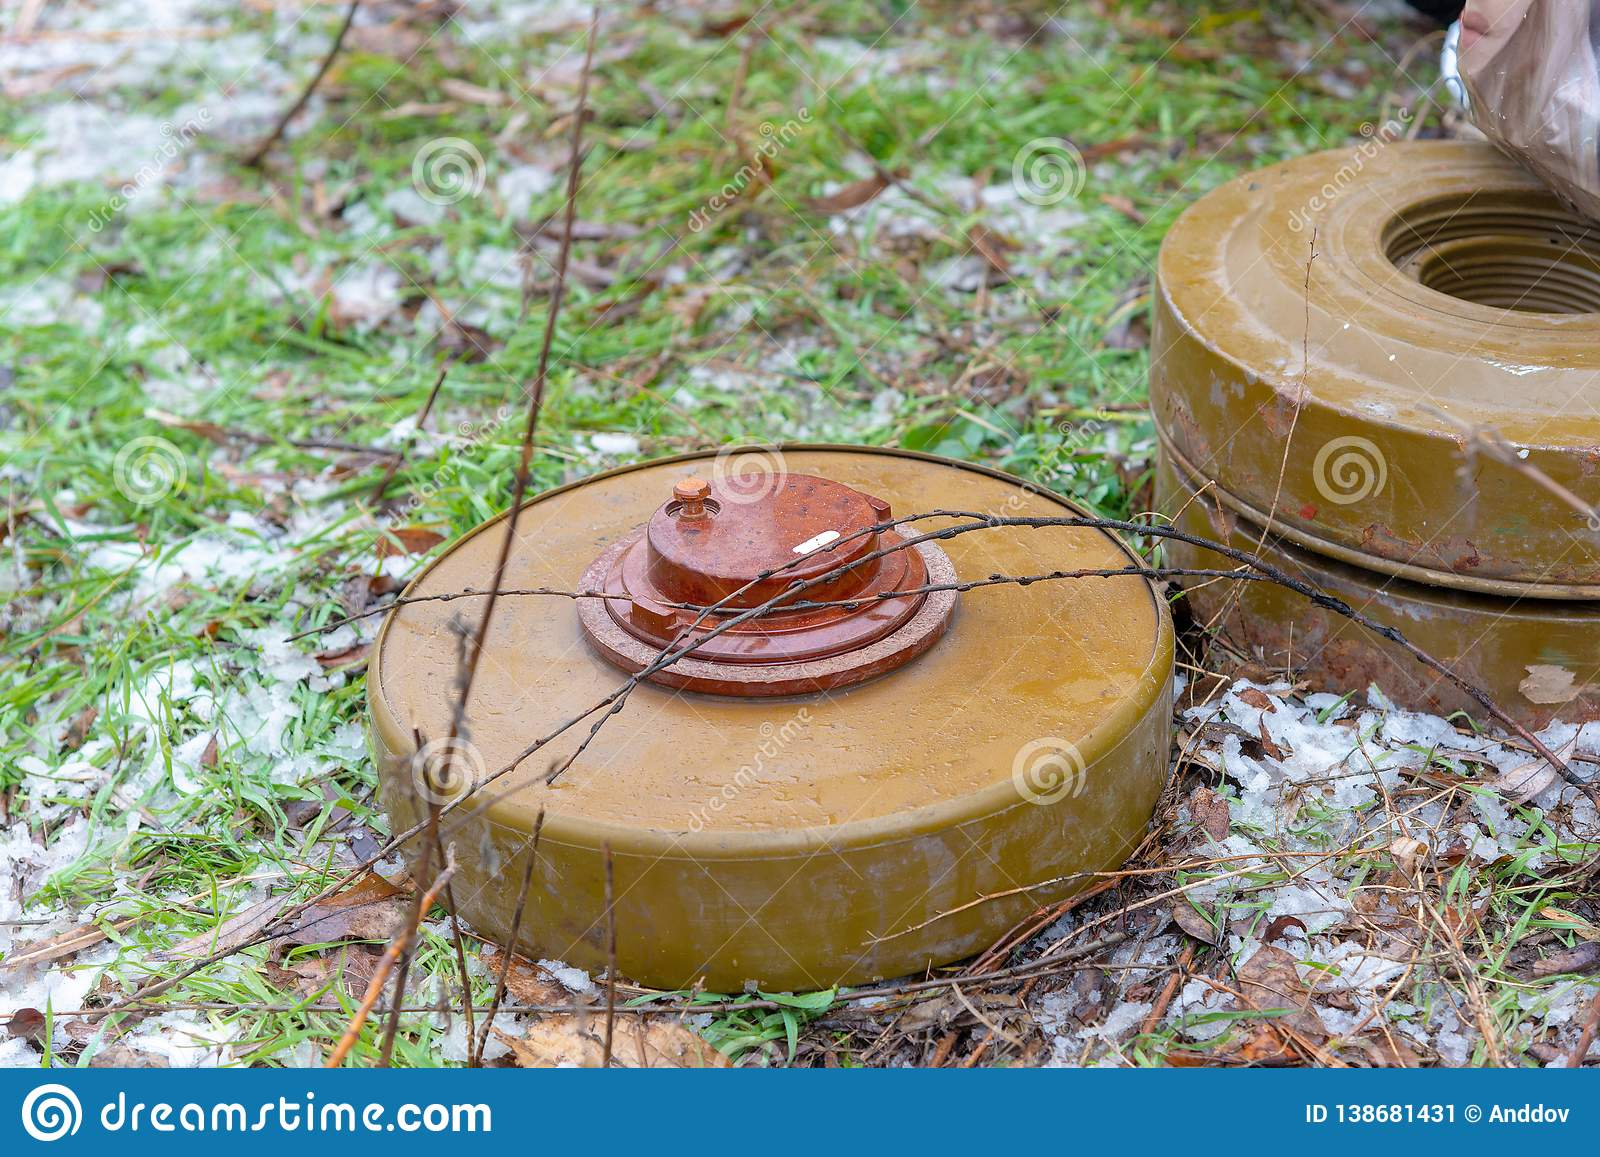 Anti-tank and anti-personnel mine for the destruction of infantry and armor